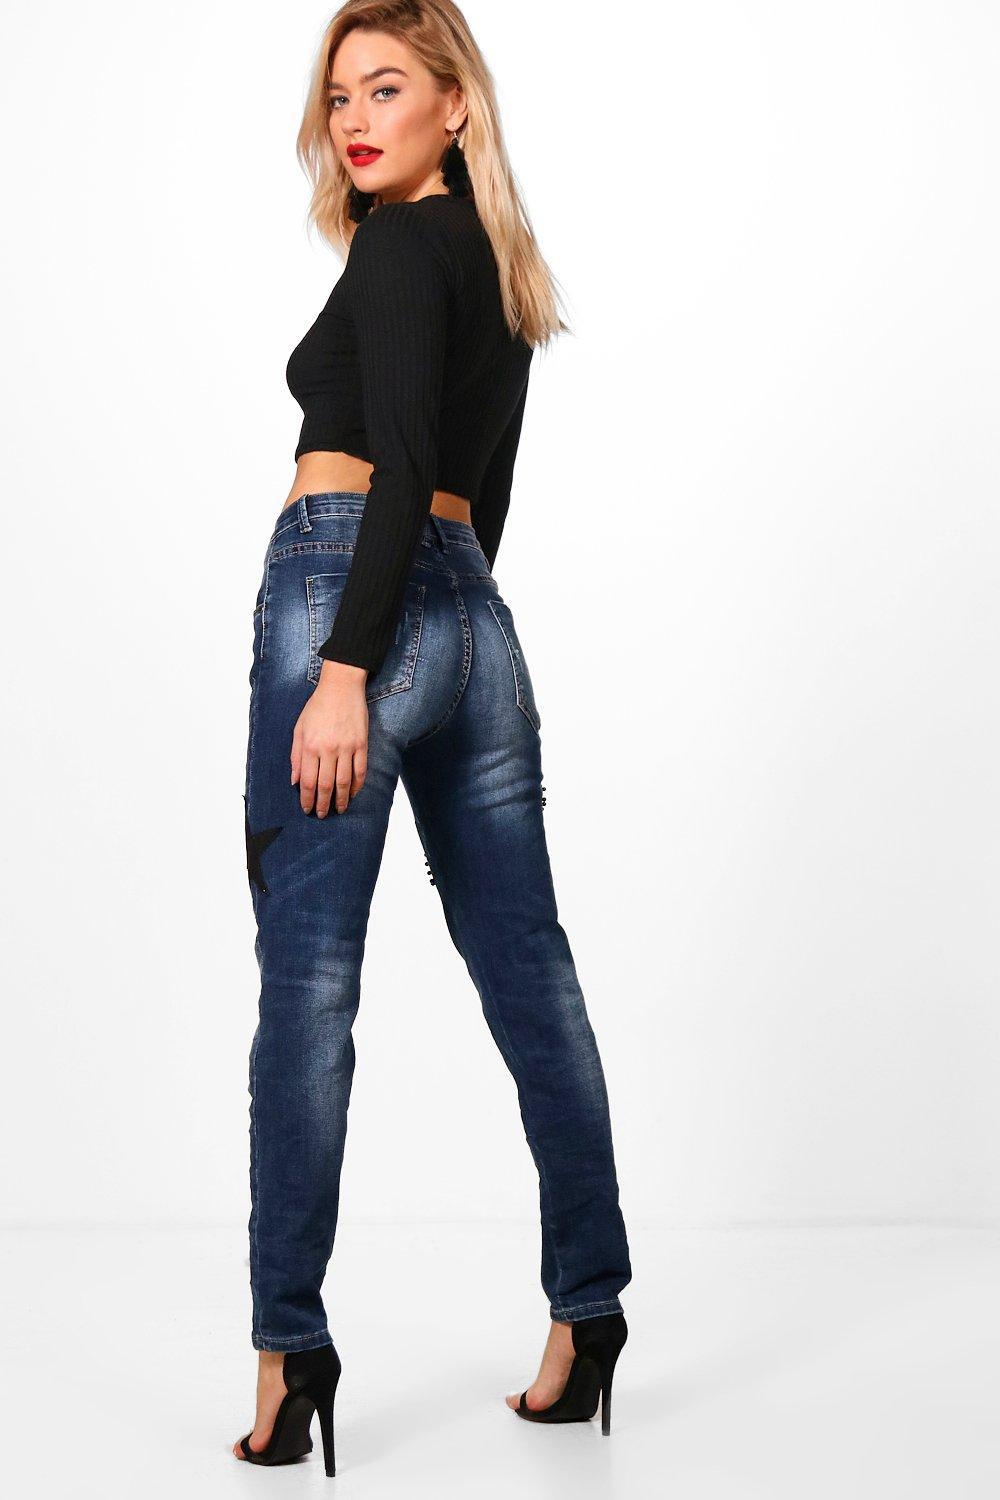 4eda8565796a Gallery. Previously sold at: Boohoo · Women's Boyfriend Jeans ...